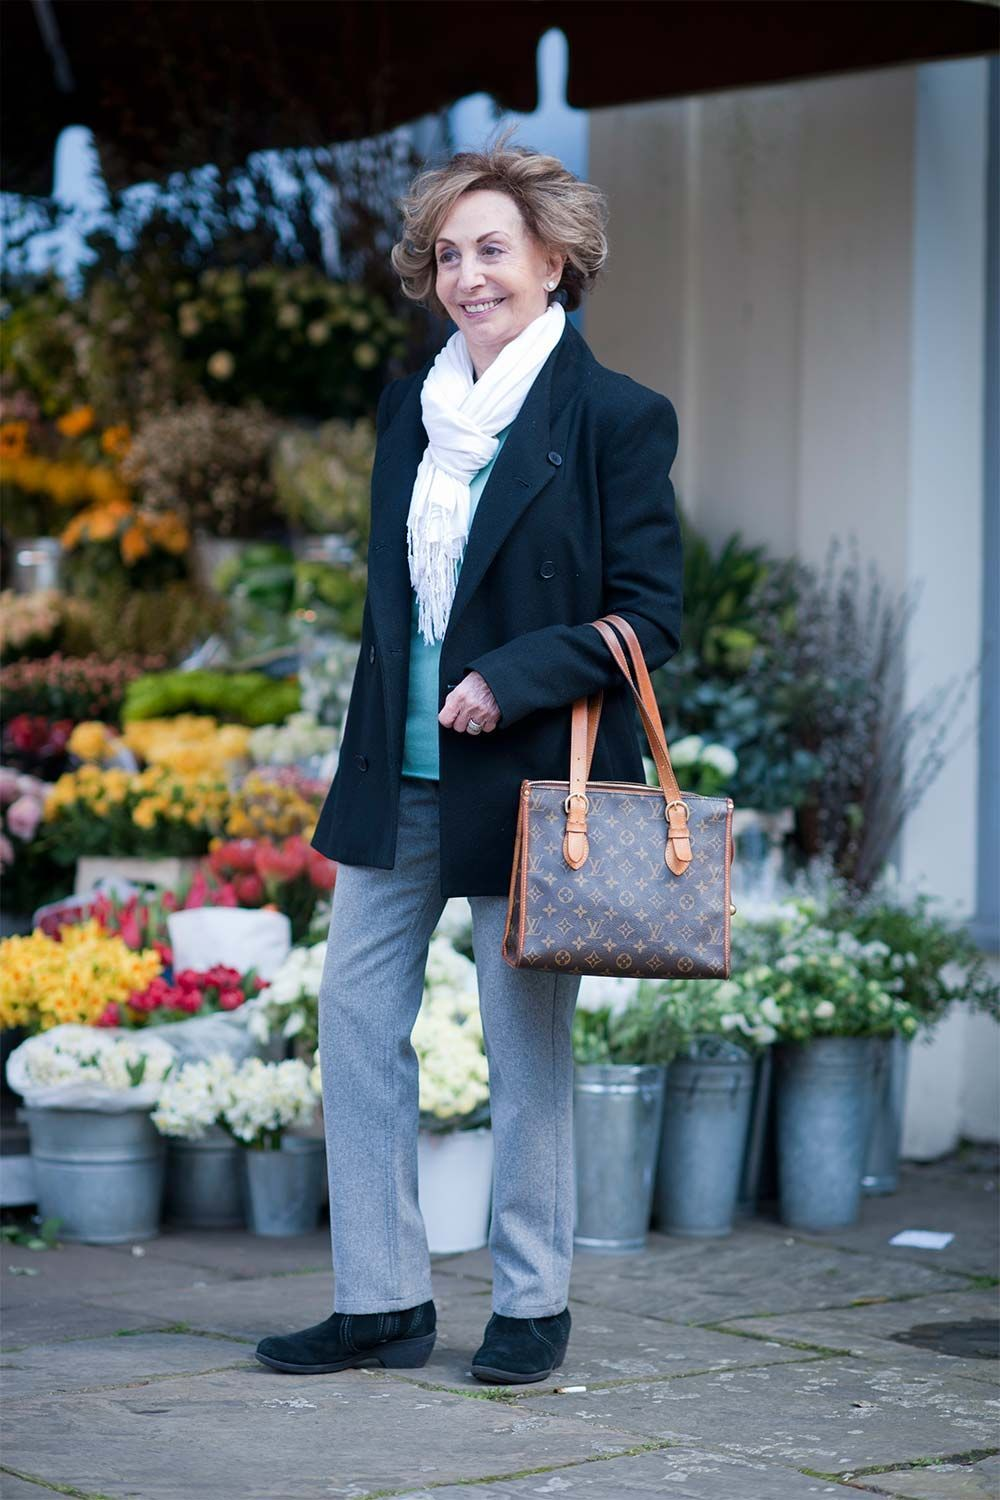 Street style from the fabulous older ladies of London